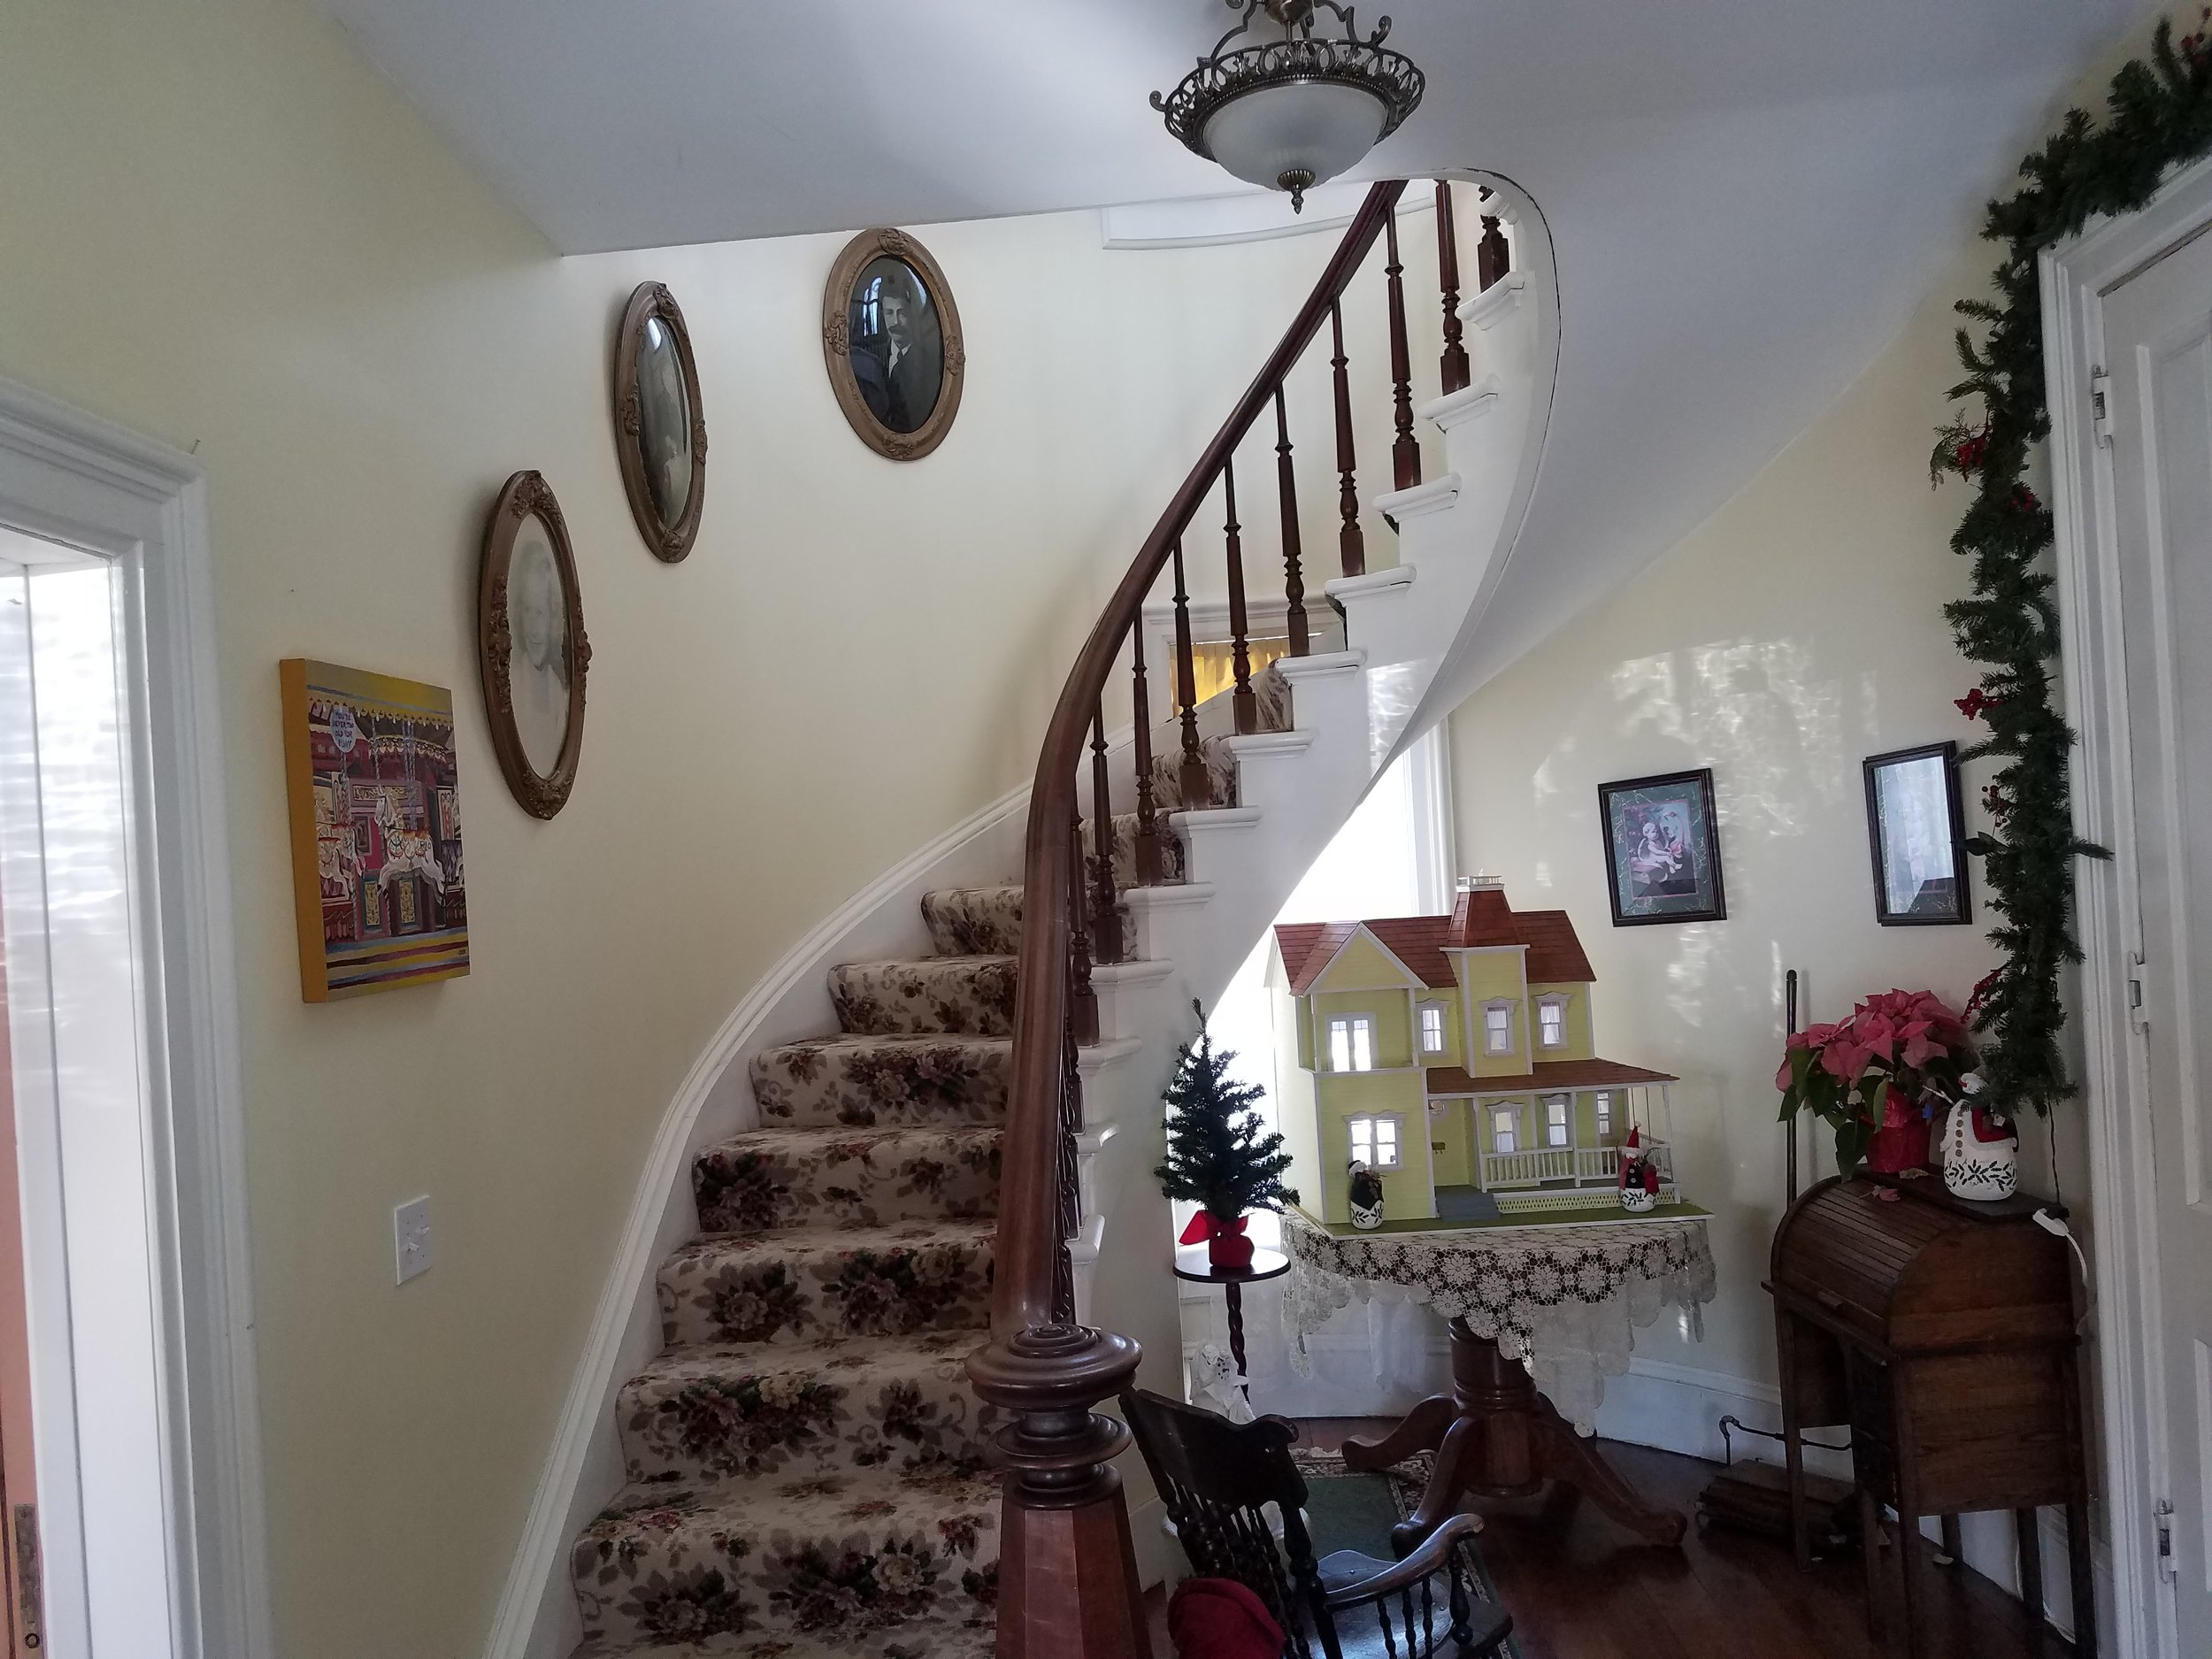 The beautiful curved staircase commanded wall and ceiling treatments to match the grandure of this inviting entry.